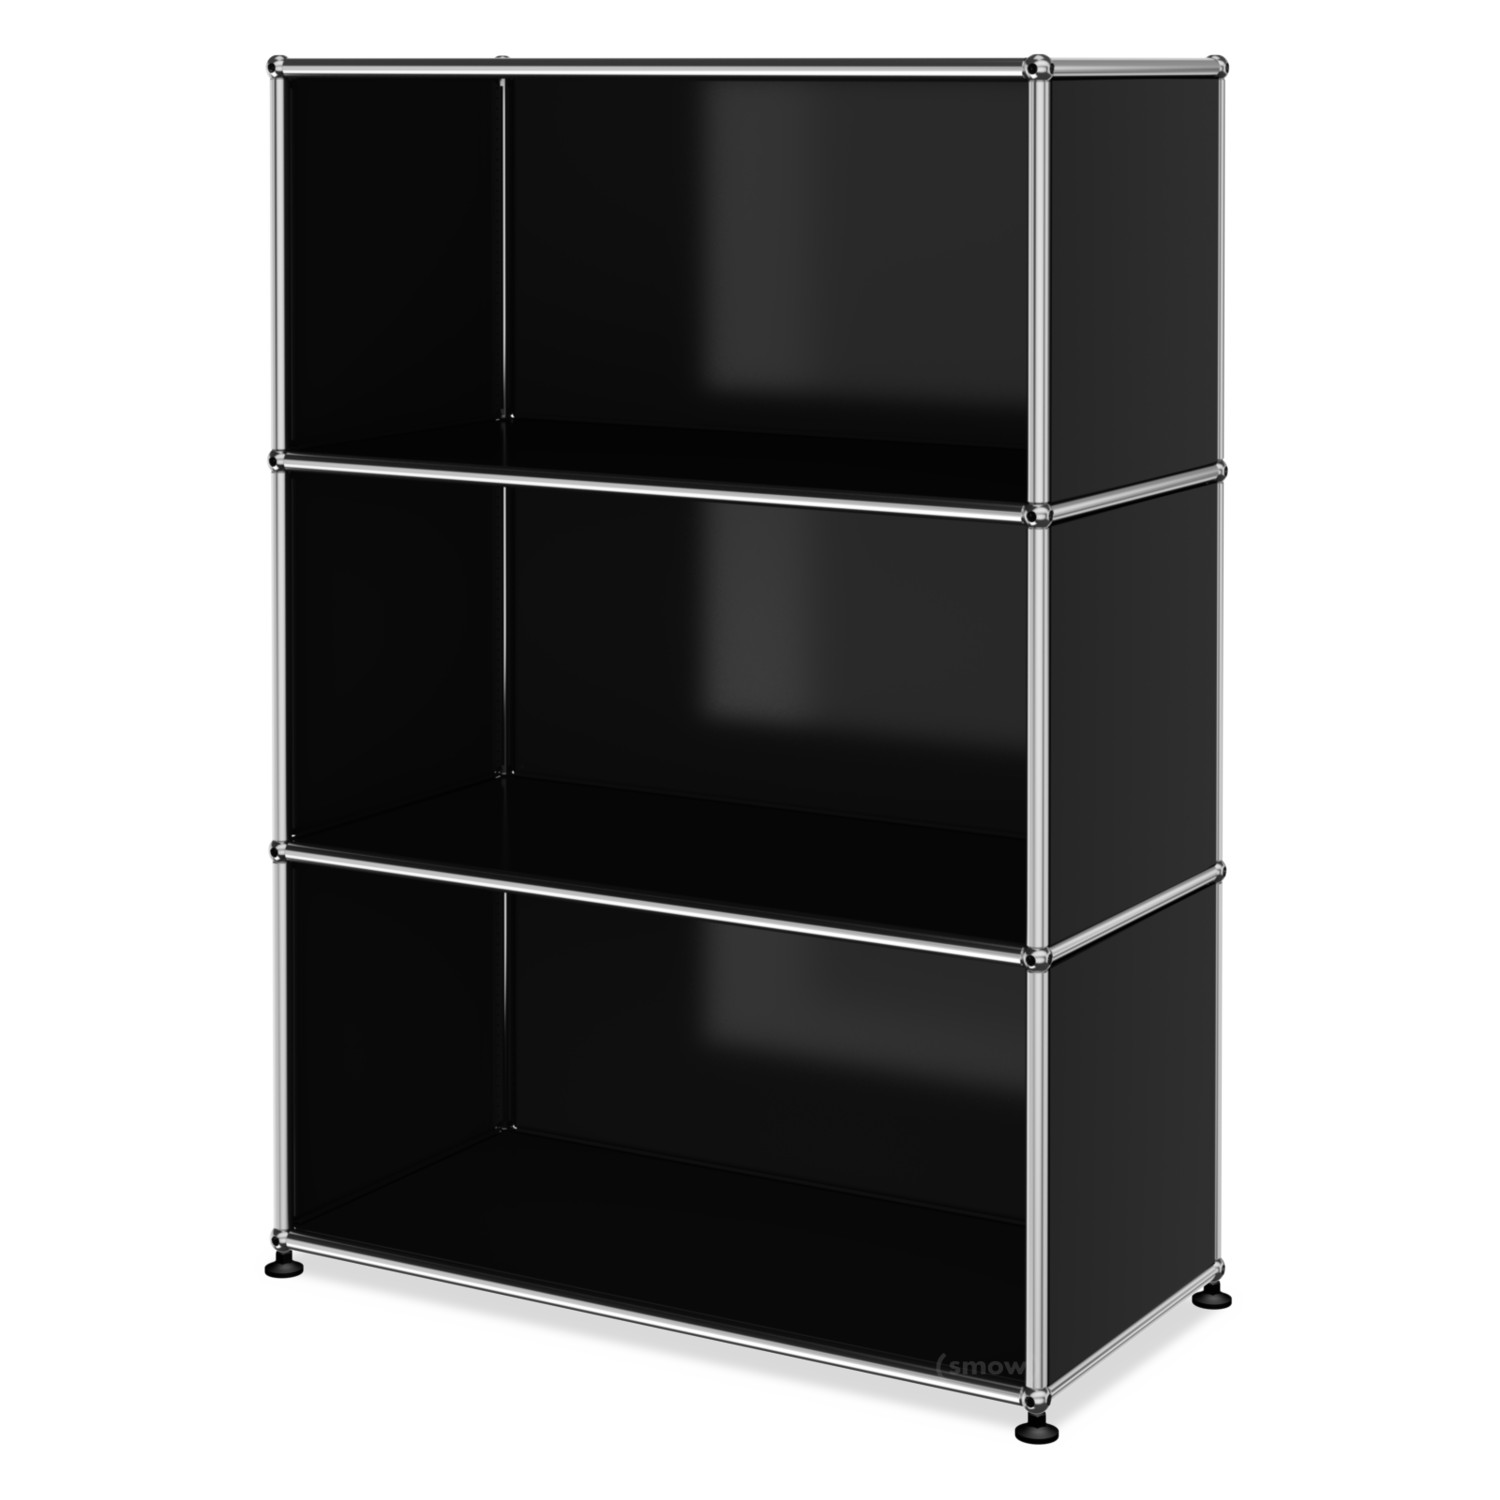 usm haller highboard m customisable graphite black ral. Black Bedroom Furniture Sets. Home Design Ideas